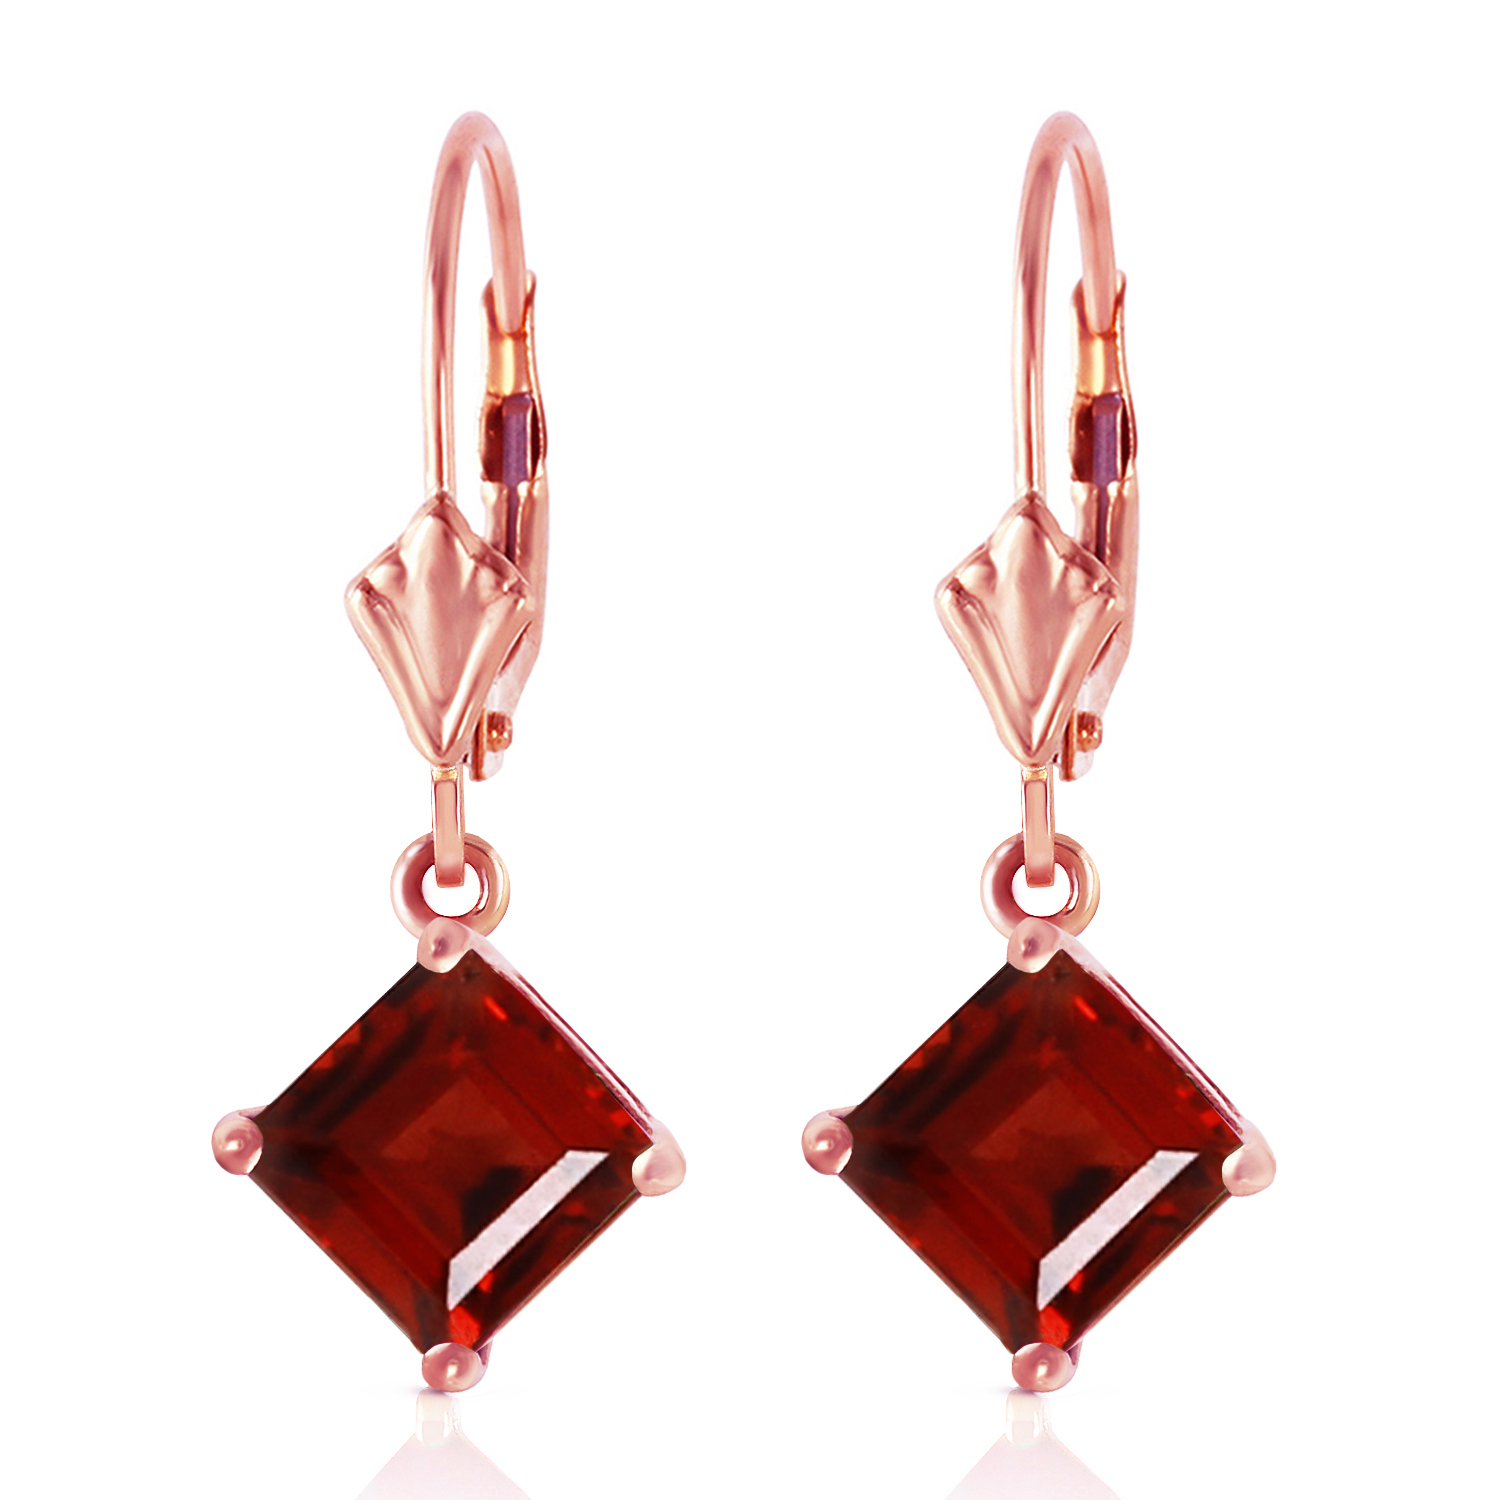 Primary image for 3.2 Carat 14K Solid Rose Gold Garnet Simplicity Earrings Womens Natural Gemstone